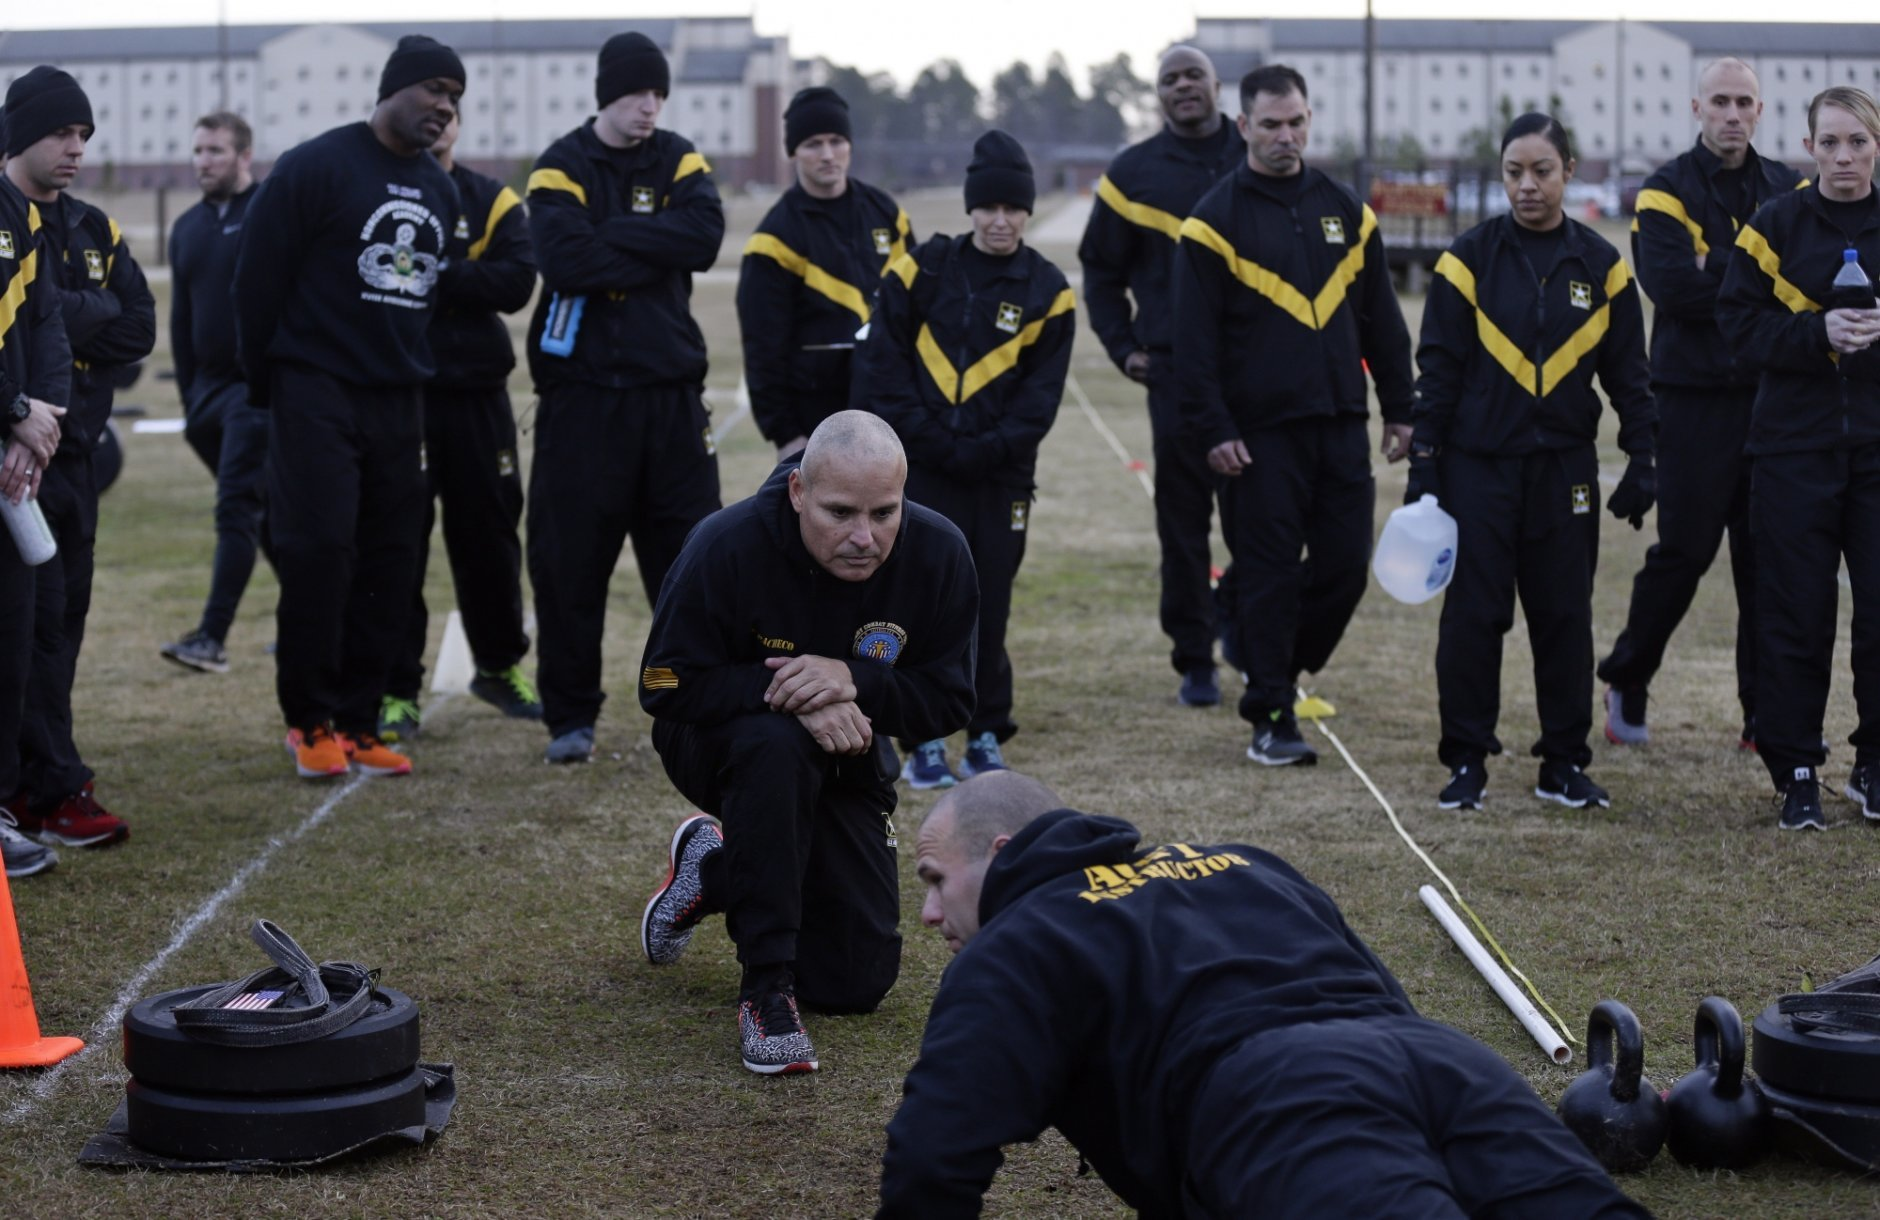 In this Jan. 8, 2019, photo, U.S Army troops observe as instructors demonstrate requirements in the new Army combat fitness test at the 108th Air Defense Artillery Brigade compound at Fort Bragg, N.C. The new test is designed to be a more accurate test of combat readiness than the current requirements. (AP Photo/Gerry Broome)